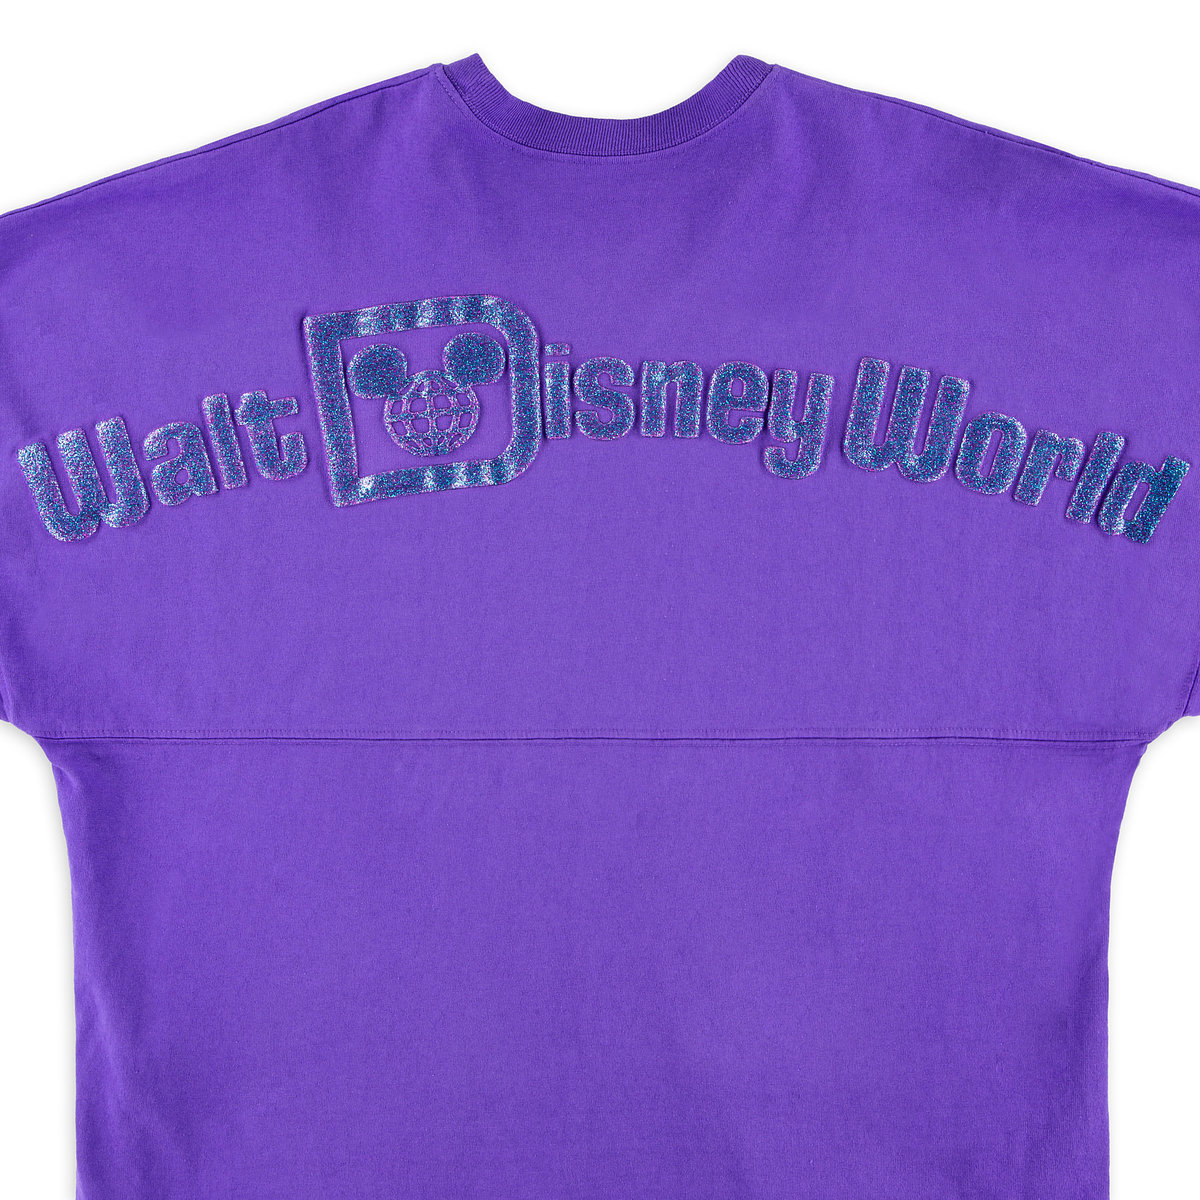 1a44ed326 Product Image of Walt Disney World Spirit Jersey for Adults - Potion Purple  # 3